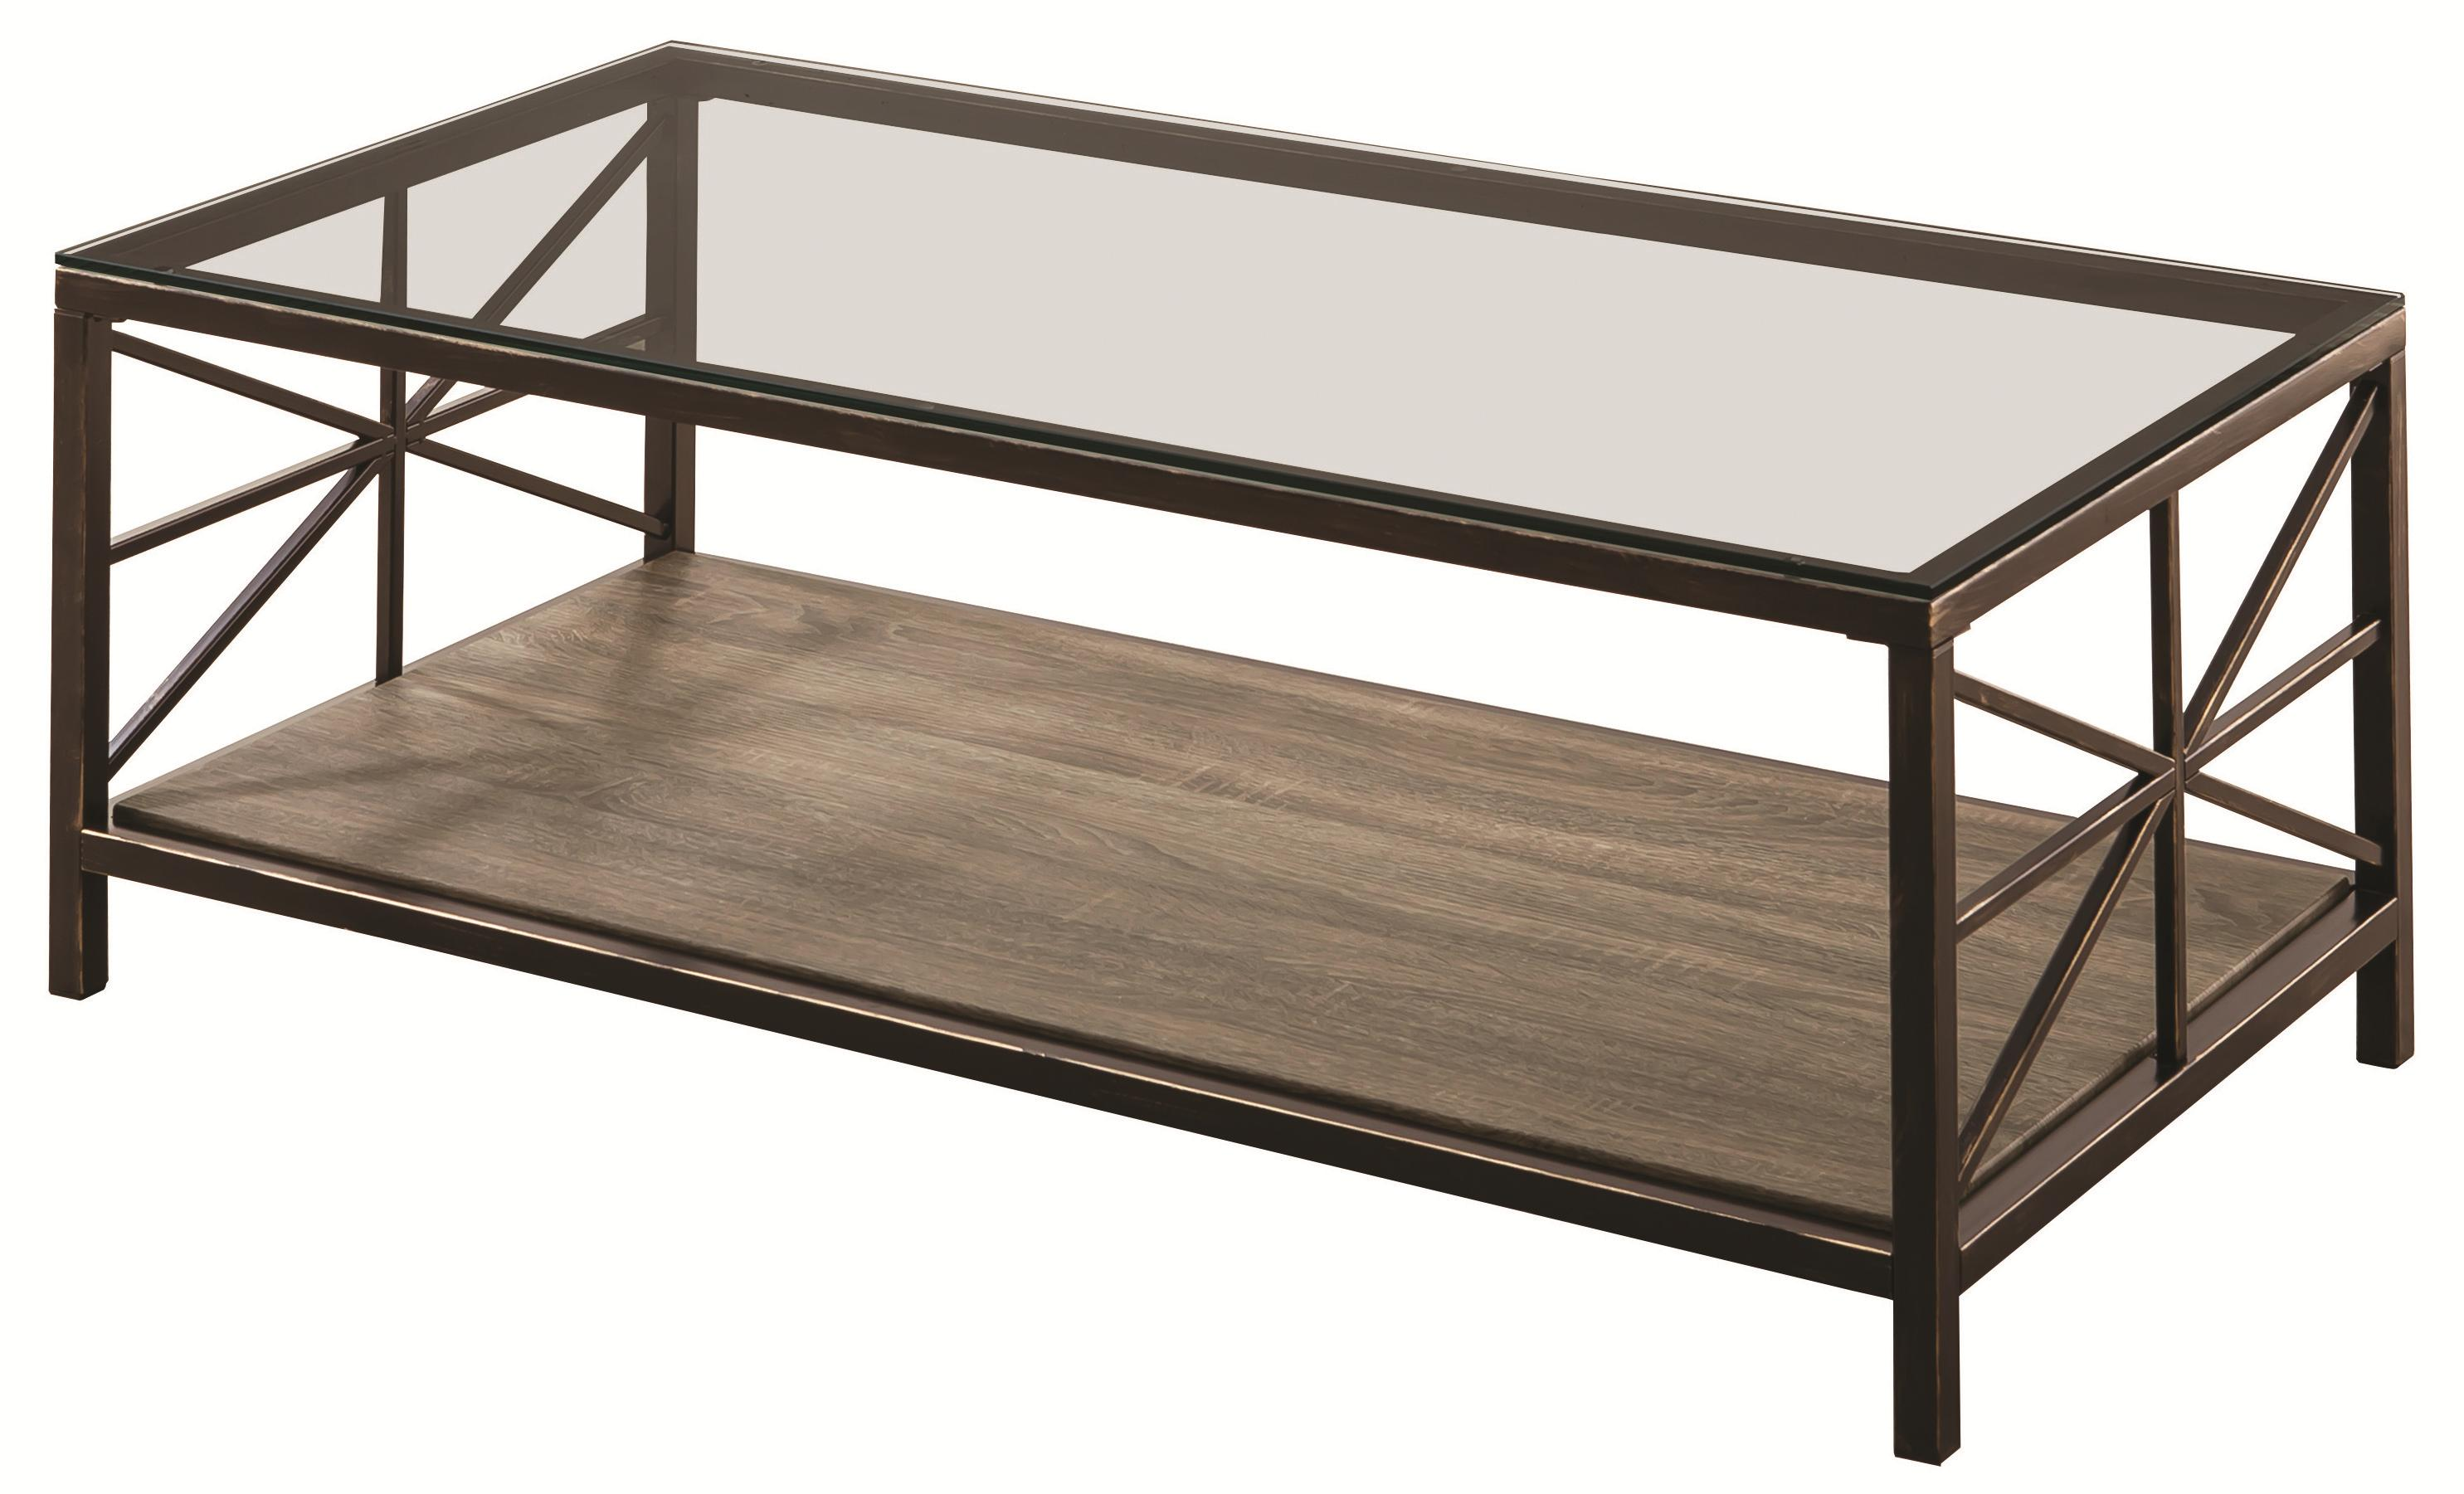 701398 avondale rustic coffee table with wood shelf and glass top